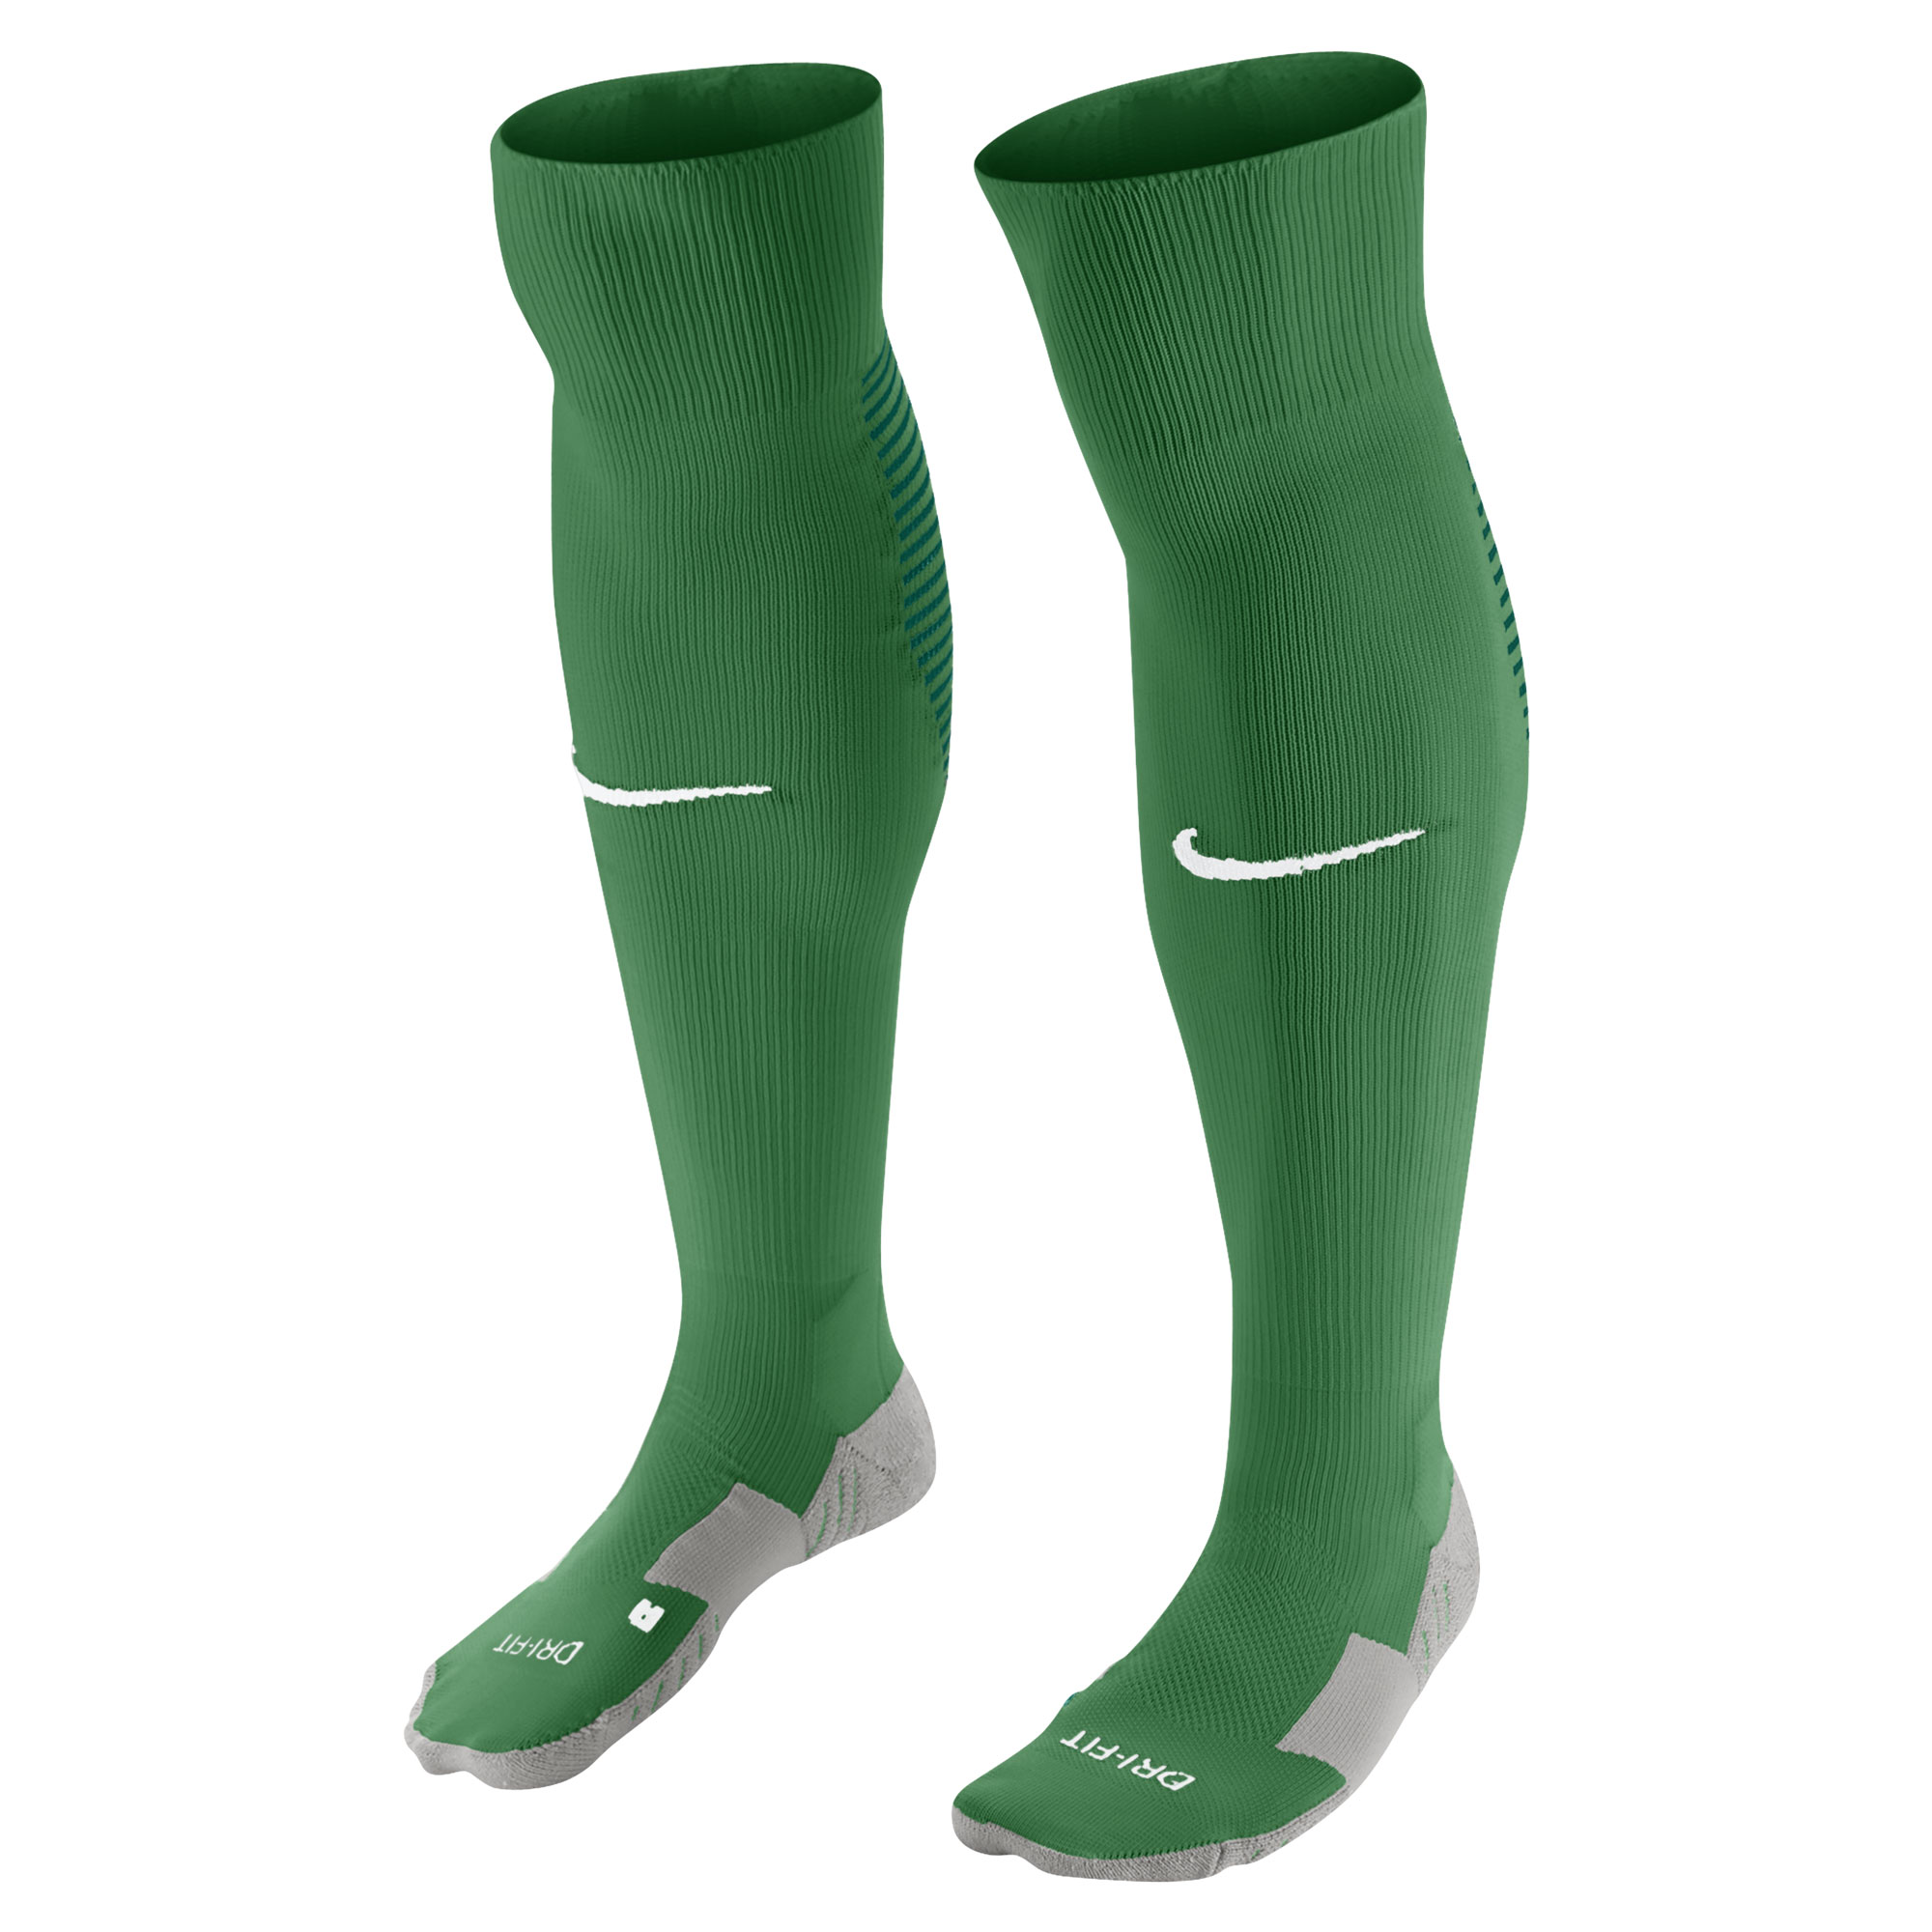 Nike Stutzen Team MatchFit OTC Football Socks SX5730-302 38-42